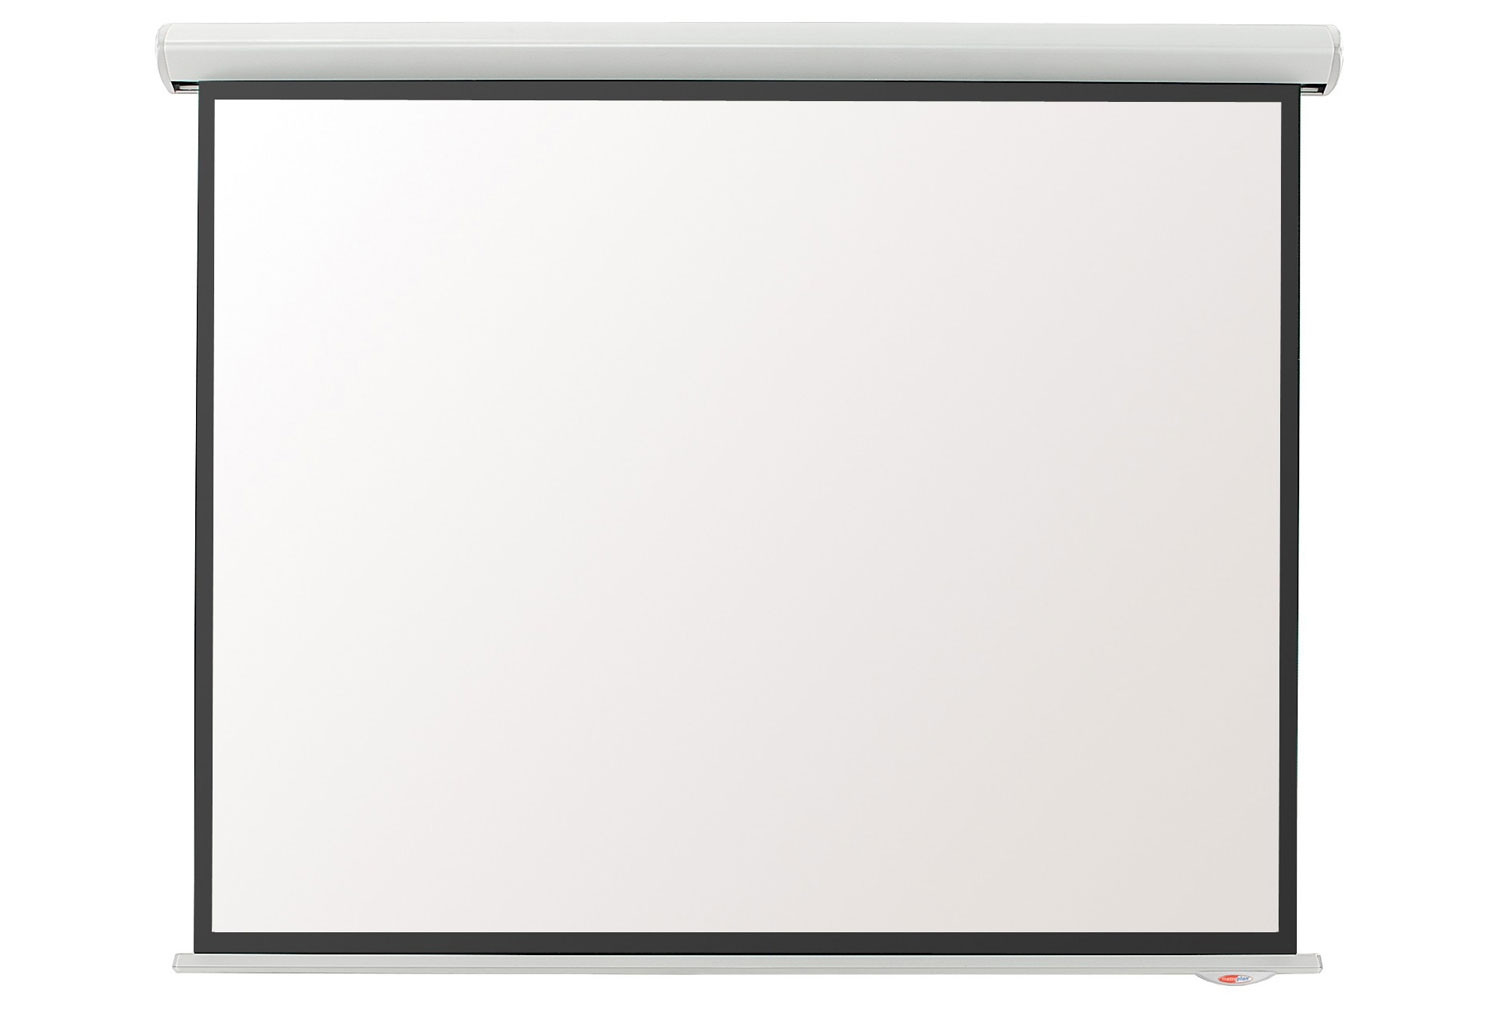 Next-Day Eyeline Design Electric Projection Screen